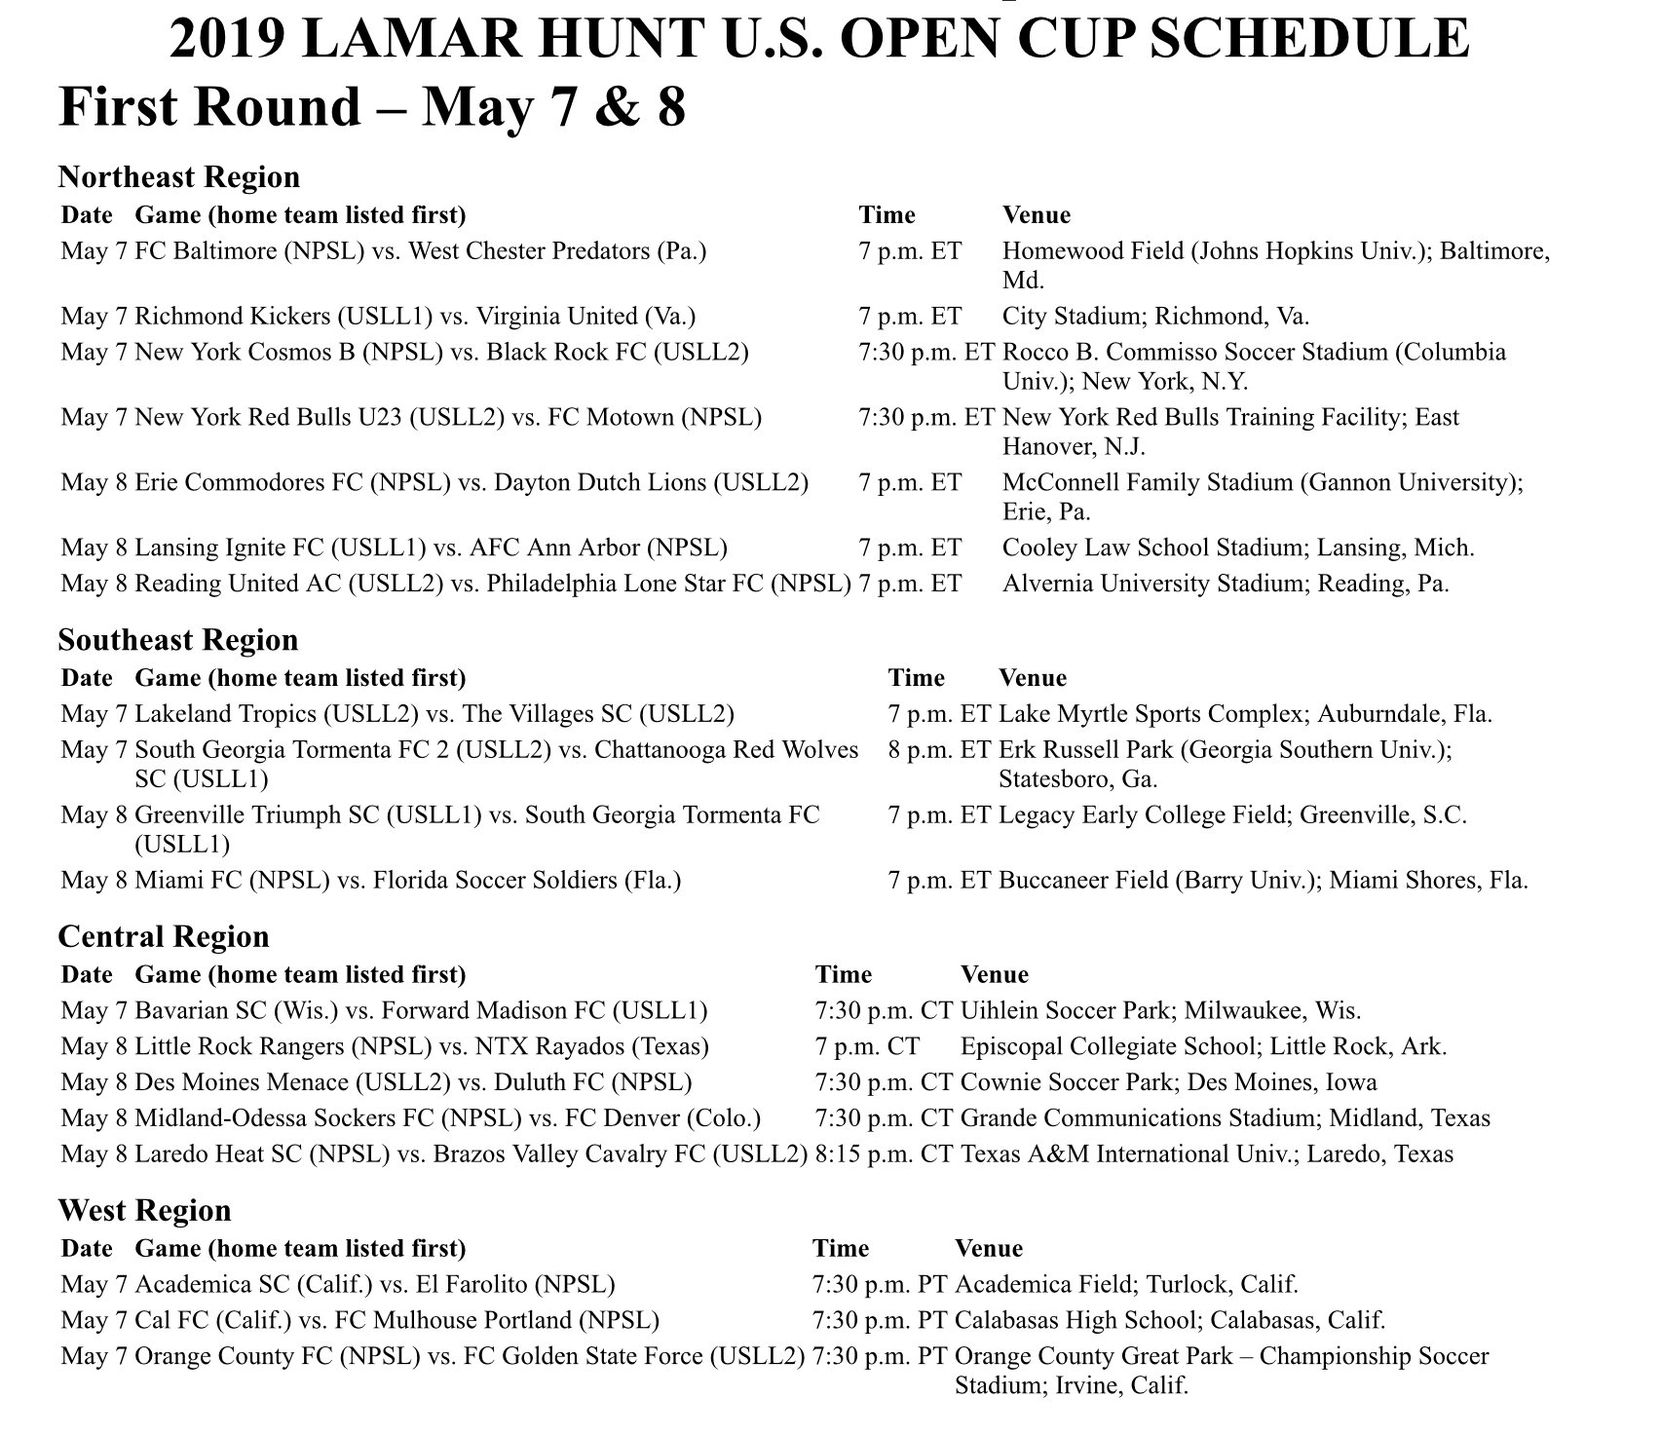 2019 US Open Cup First Round